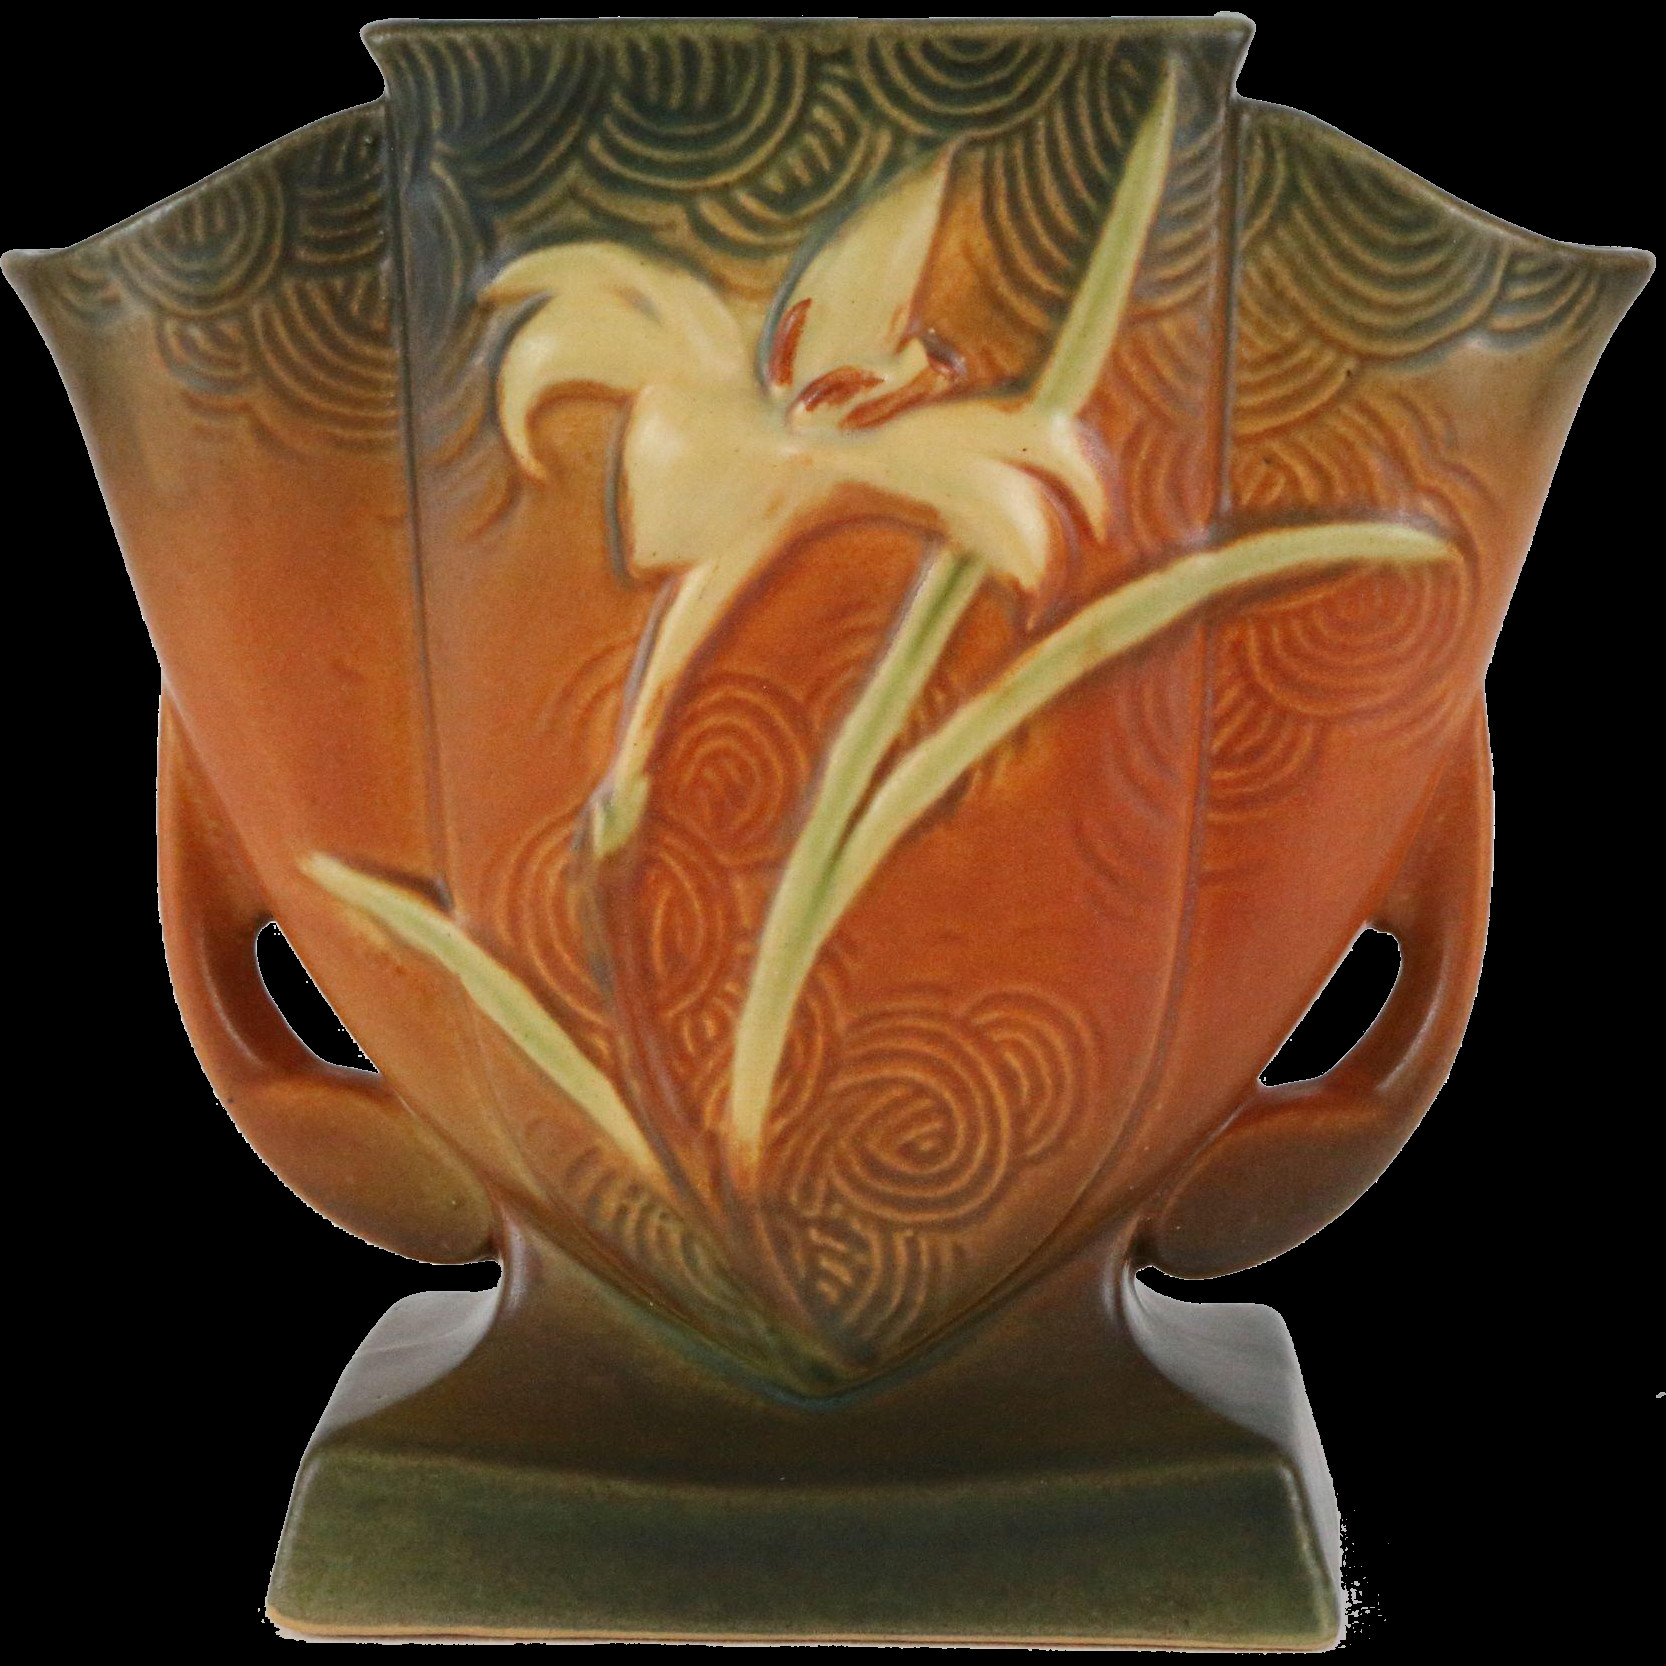 Ceramic Vase Ideas Of Roseville Zephyr Lily 7 Fan Vase 206 7 Roseville Decorative Pertaining to Roseville Zephyr Lily 7 Fan Vase 206 7